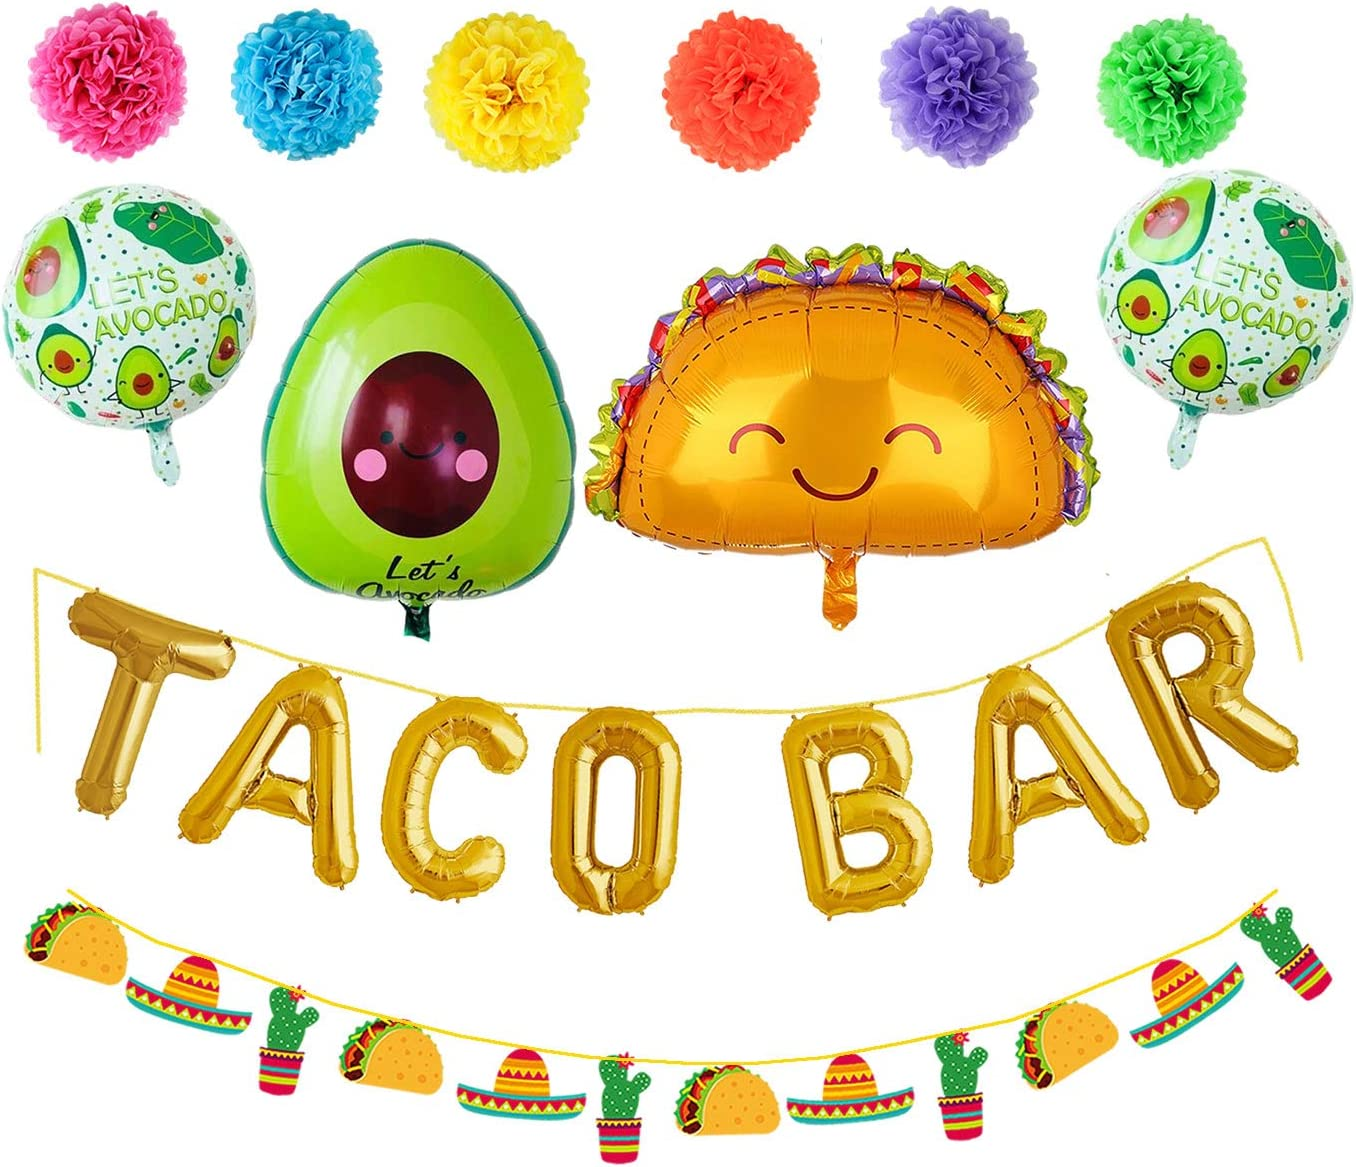 Taco Bar Party Decorations Balloons Banner Sign Garland Pom Poms for Fiesta Mexican Party Birthday Baby Shower Wedding Bridal Shower Engagement Party